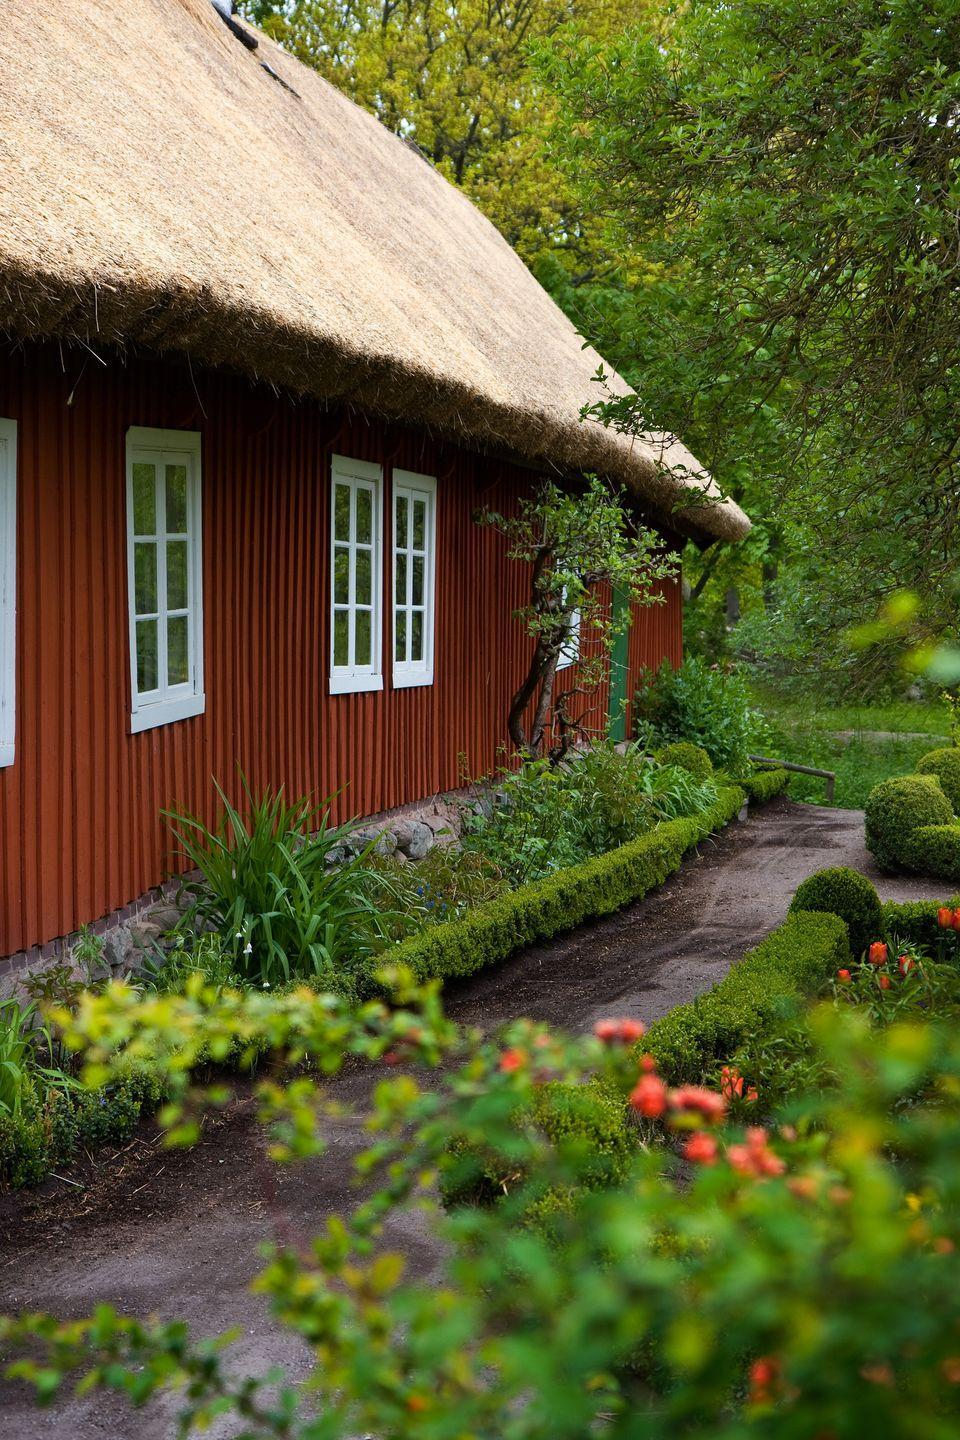 "<p><a href=""https://www.skansen.se/en/"" rel=""nofollow noopener"" target=""_blank"" data-ylk=""slk:Skansen"" class=""link rapid-noclick-resp"">Skansen</a> is one of Europe's most renowned open-air museums and is situated on an island at the edge of Stockholm's city center. Filled with 150 historical buildings gathered from all over Sweden set on nearly 75 acres, one of the park's must-visits is the stately Skogaholm Manor, a refined example of the Swedish Rococo style from the 18th century. </p>"